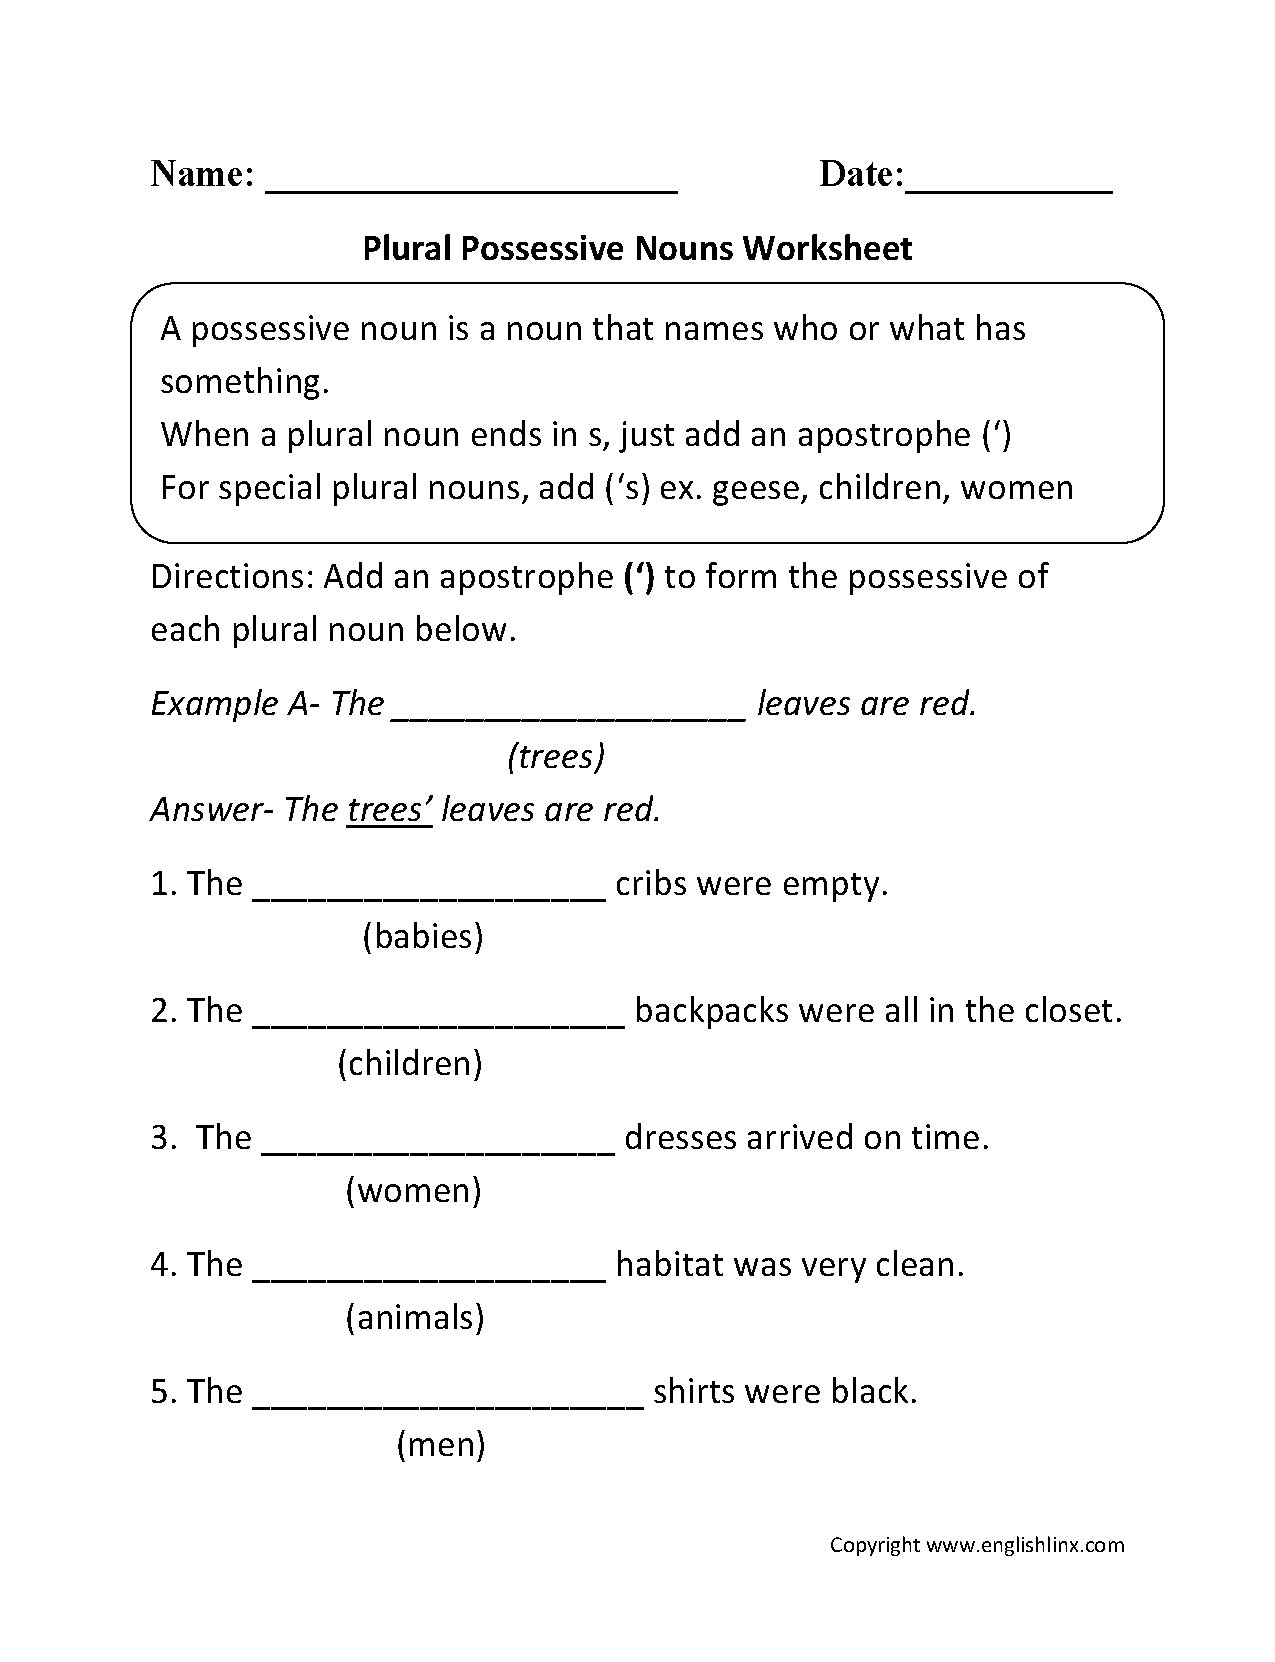 Aldiablosus  Gorgeous Nouns Worksheets  Possessive Nouns Worksheets With Remarkable Possessive Nouns Worksheets With Amazing Measuring Jug Worksheet Also Correlative Conjunctions Exercises Worksheets In Addition Guided Composition Worksheets And Past And Present Tense Worksheets For Grade  As Well As Addition Worksheets Grade  Additionally Worksheets Equivalent Fractions From Englishlinxcom With Aldiablosus  Remarkable Nouns Worksheets  Possessive Nouns Worksheets With Amazing Possessive Nouns Worksheets And Gorgeous Measuring Jug Worksheet Also Correlative Conjunctions Exercises Worksheets In Addition Guided Composition Worksheets From Englishlinxcom